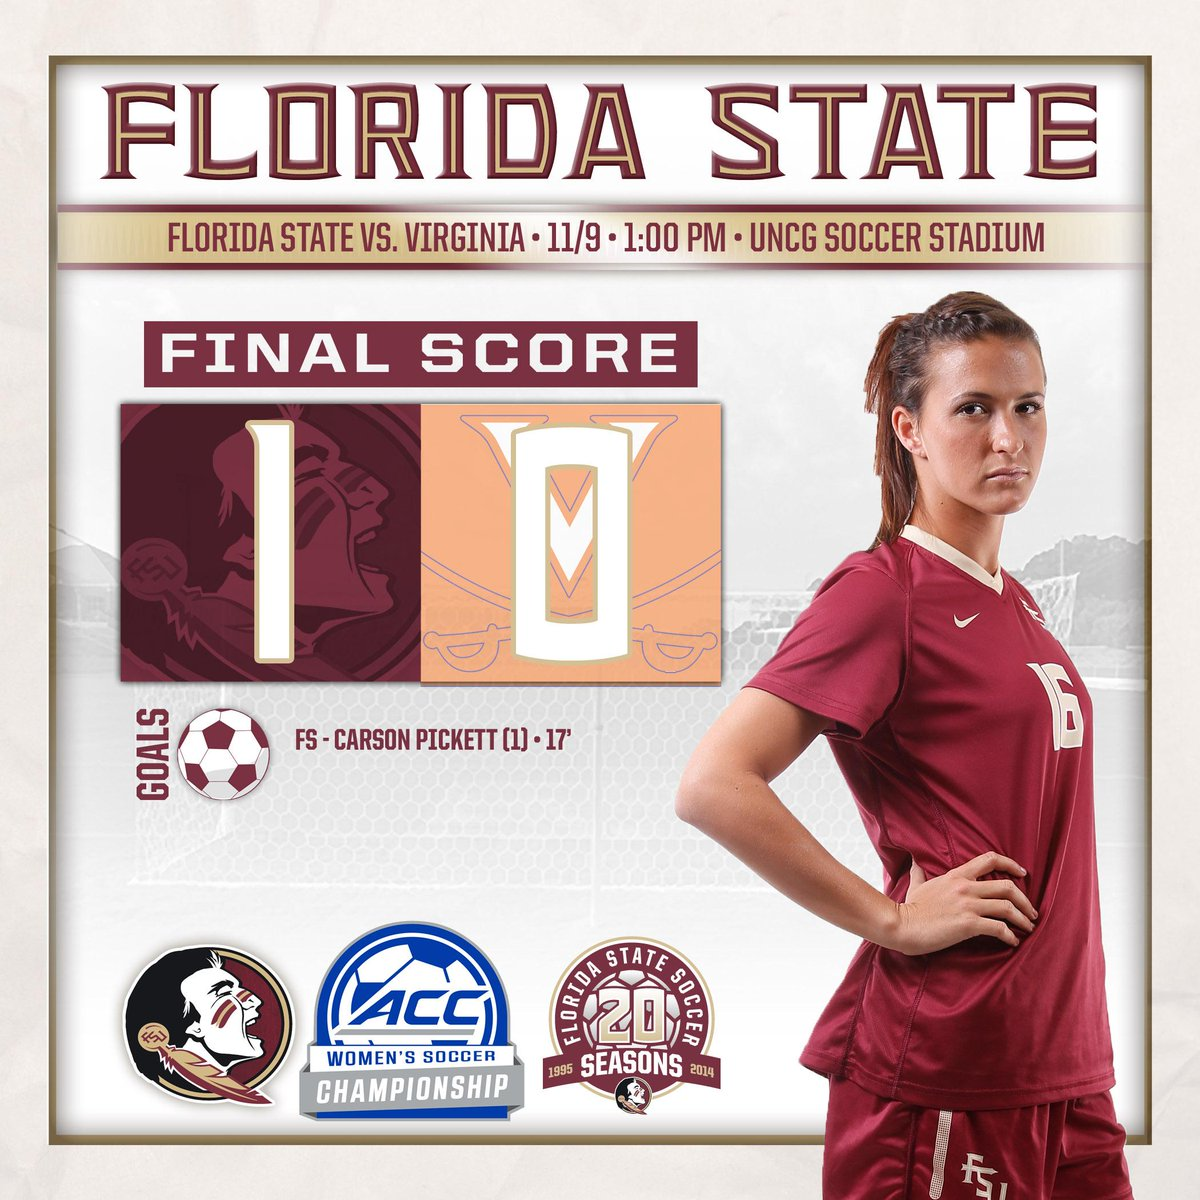 Final Score from Greensboro Your #Noles are 2014 ACC Champions!!!! Back-to-back league titles for the #Noles! http://t.co/mvzMA3Rt95